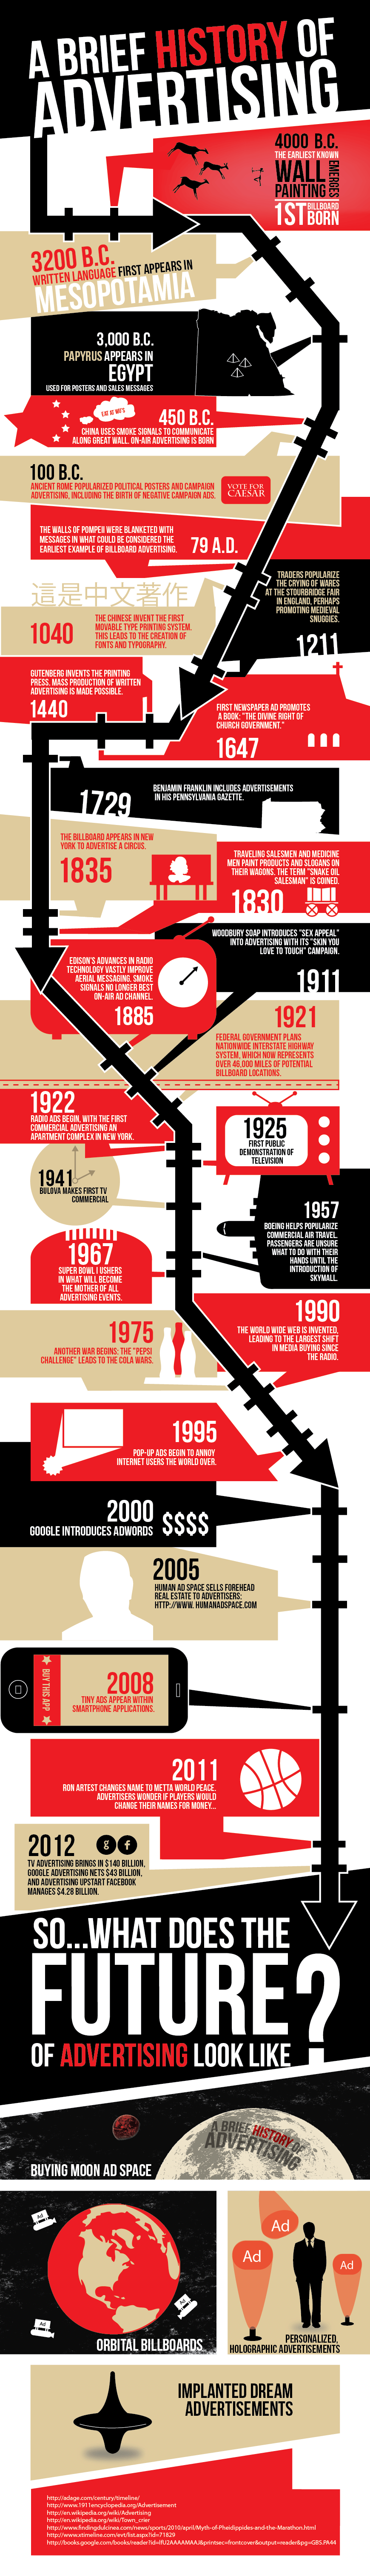 Advertising: A Brief History